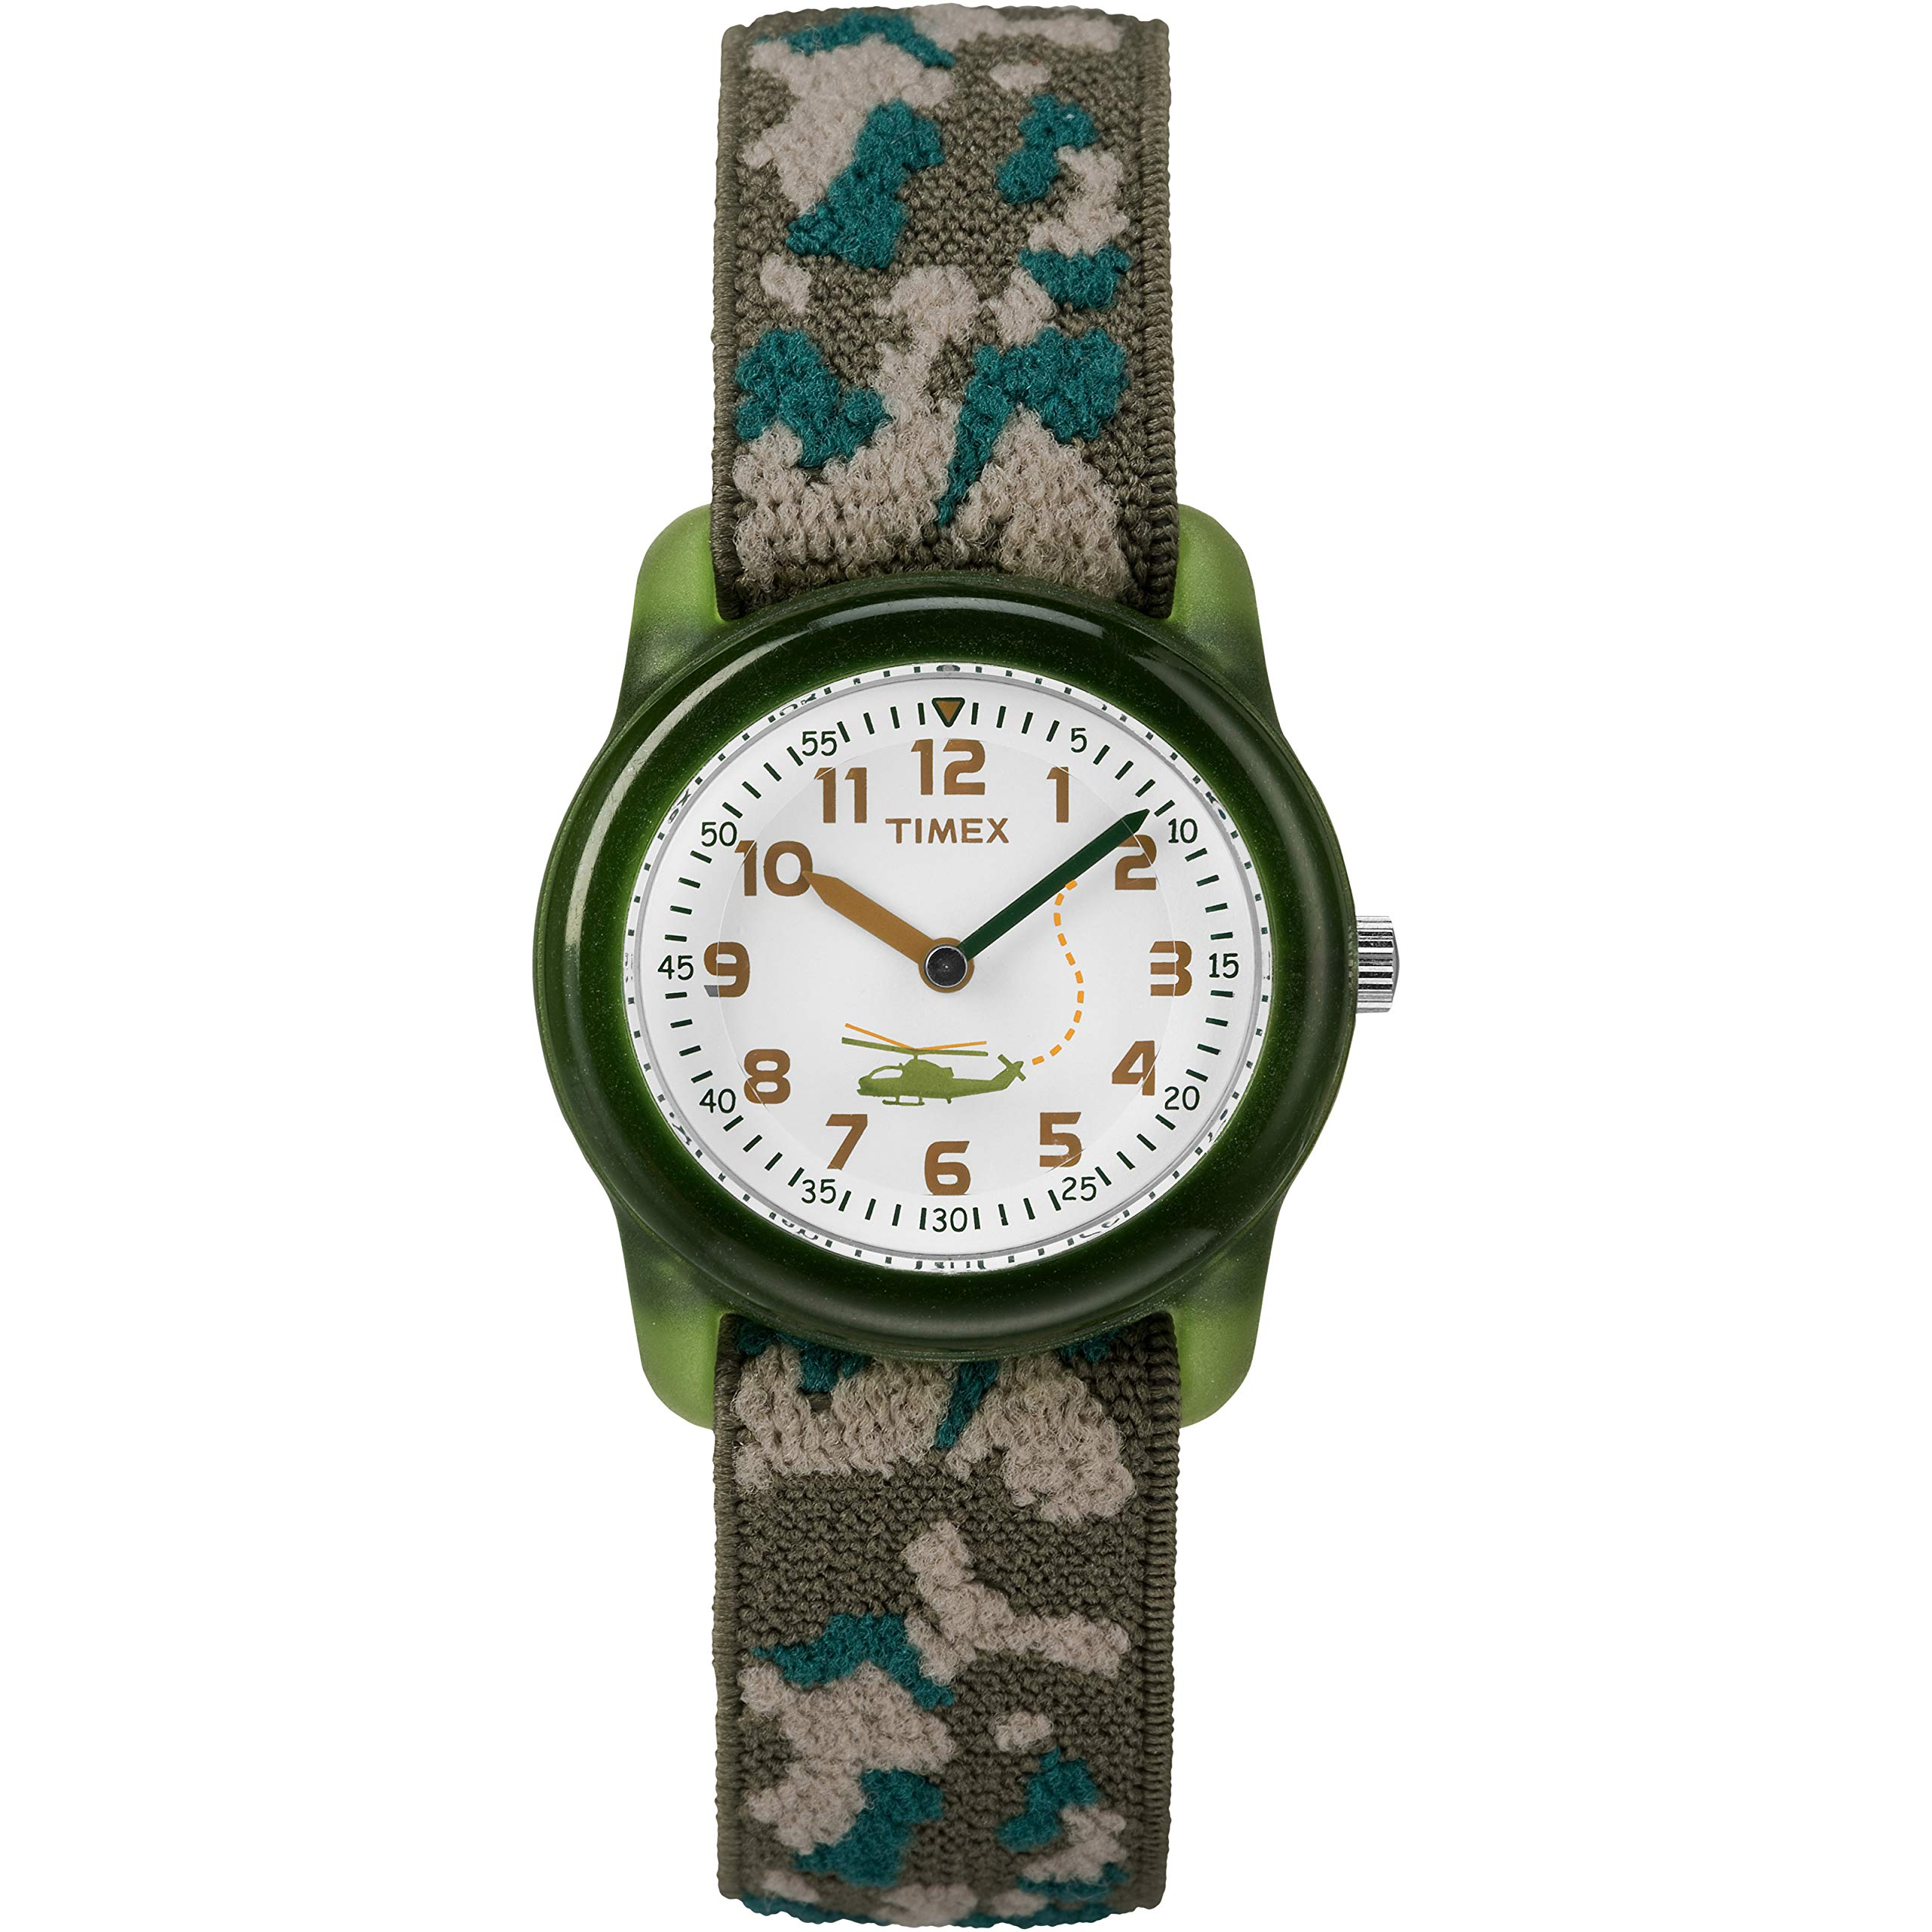 Timex Boys T78141 Time Machines Green Camo Elastic Fabric Strap Watch by Timex